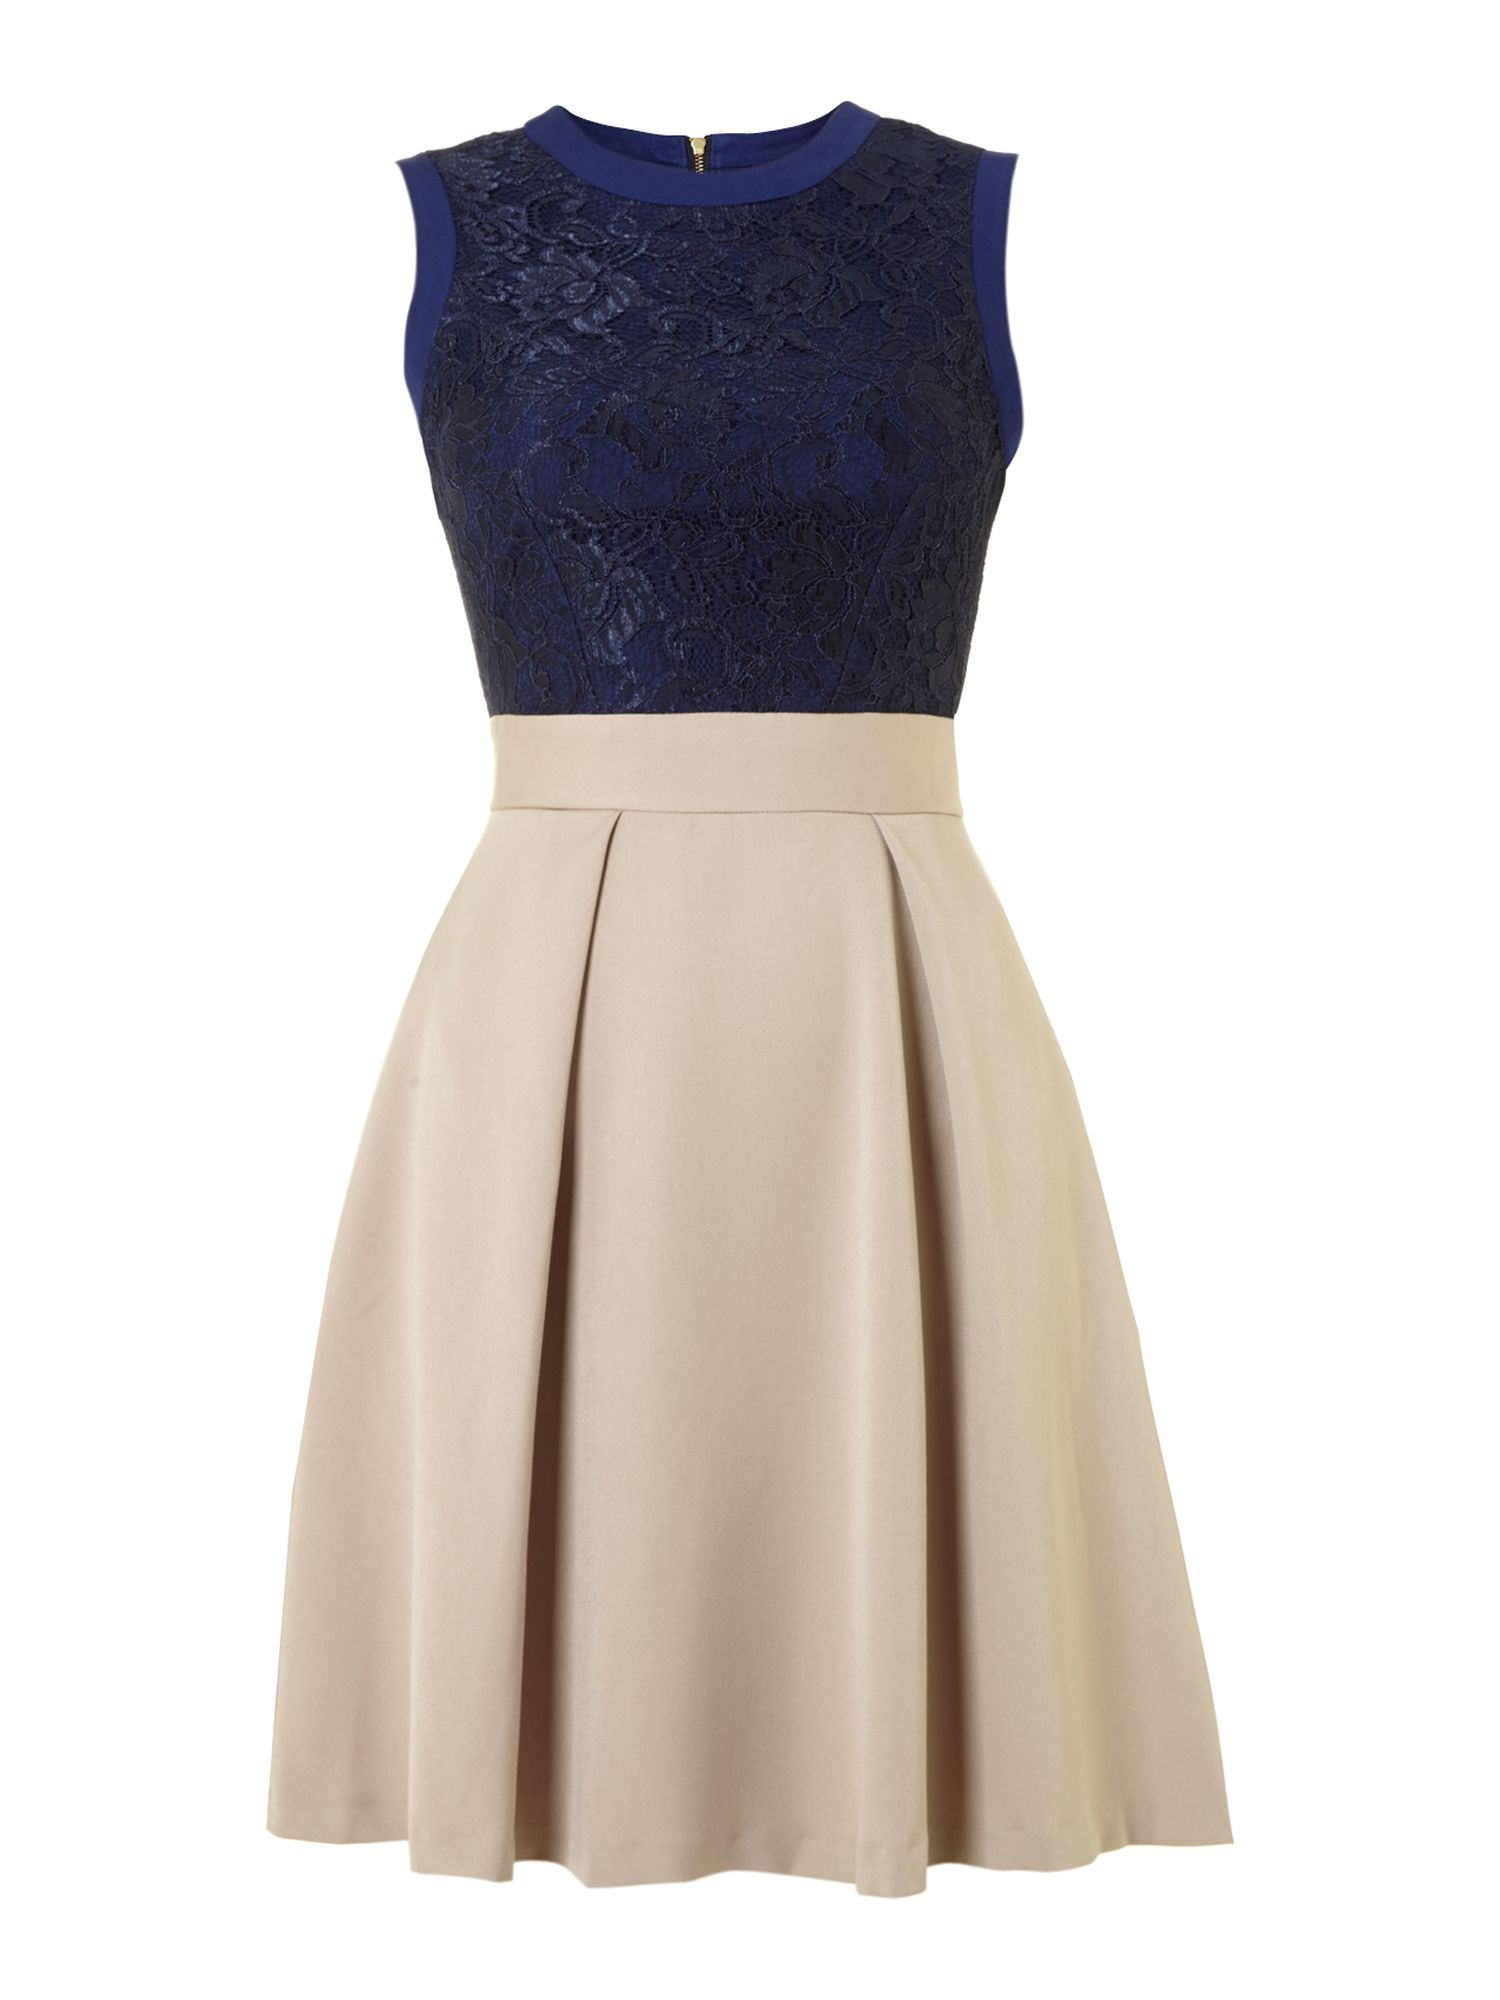 Yori lace side panel skater dress in navy